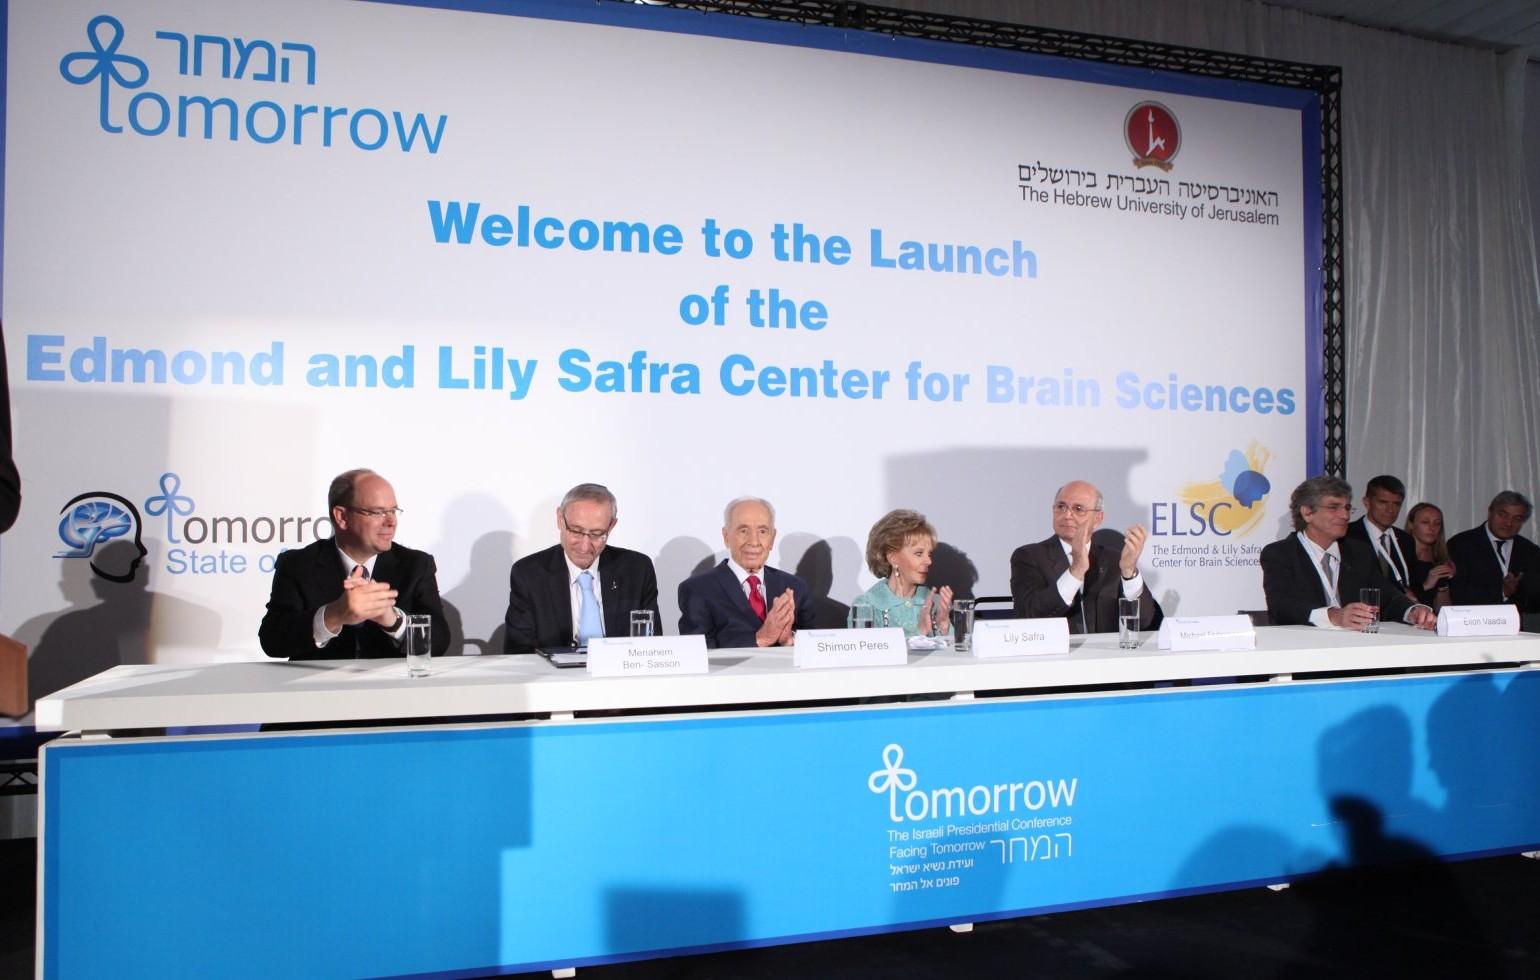 The Edmond and Lily Safra Center for Brain Sciences launches at the Presidential Conference in Jerusalem.